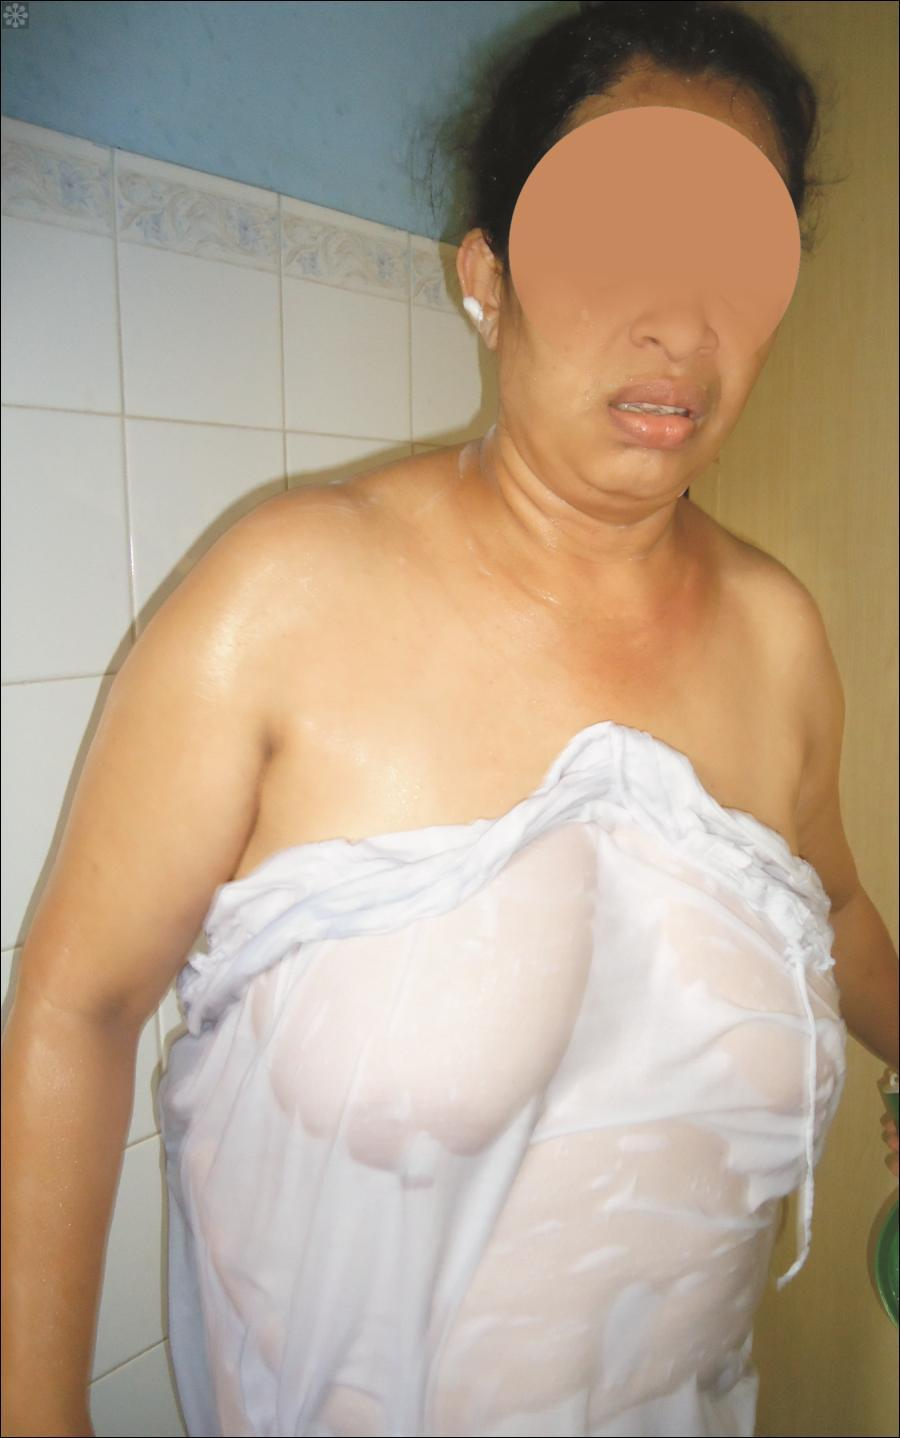 Authoritative point Middle age aunty sex photo